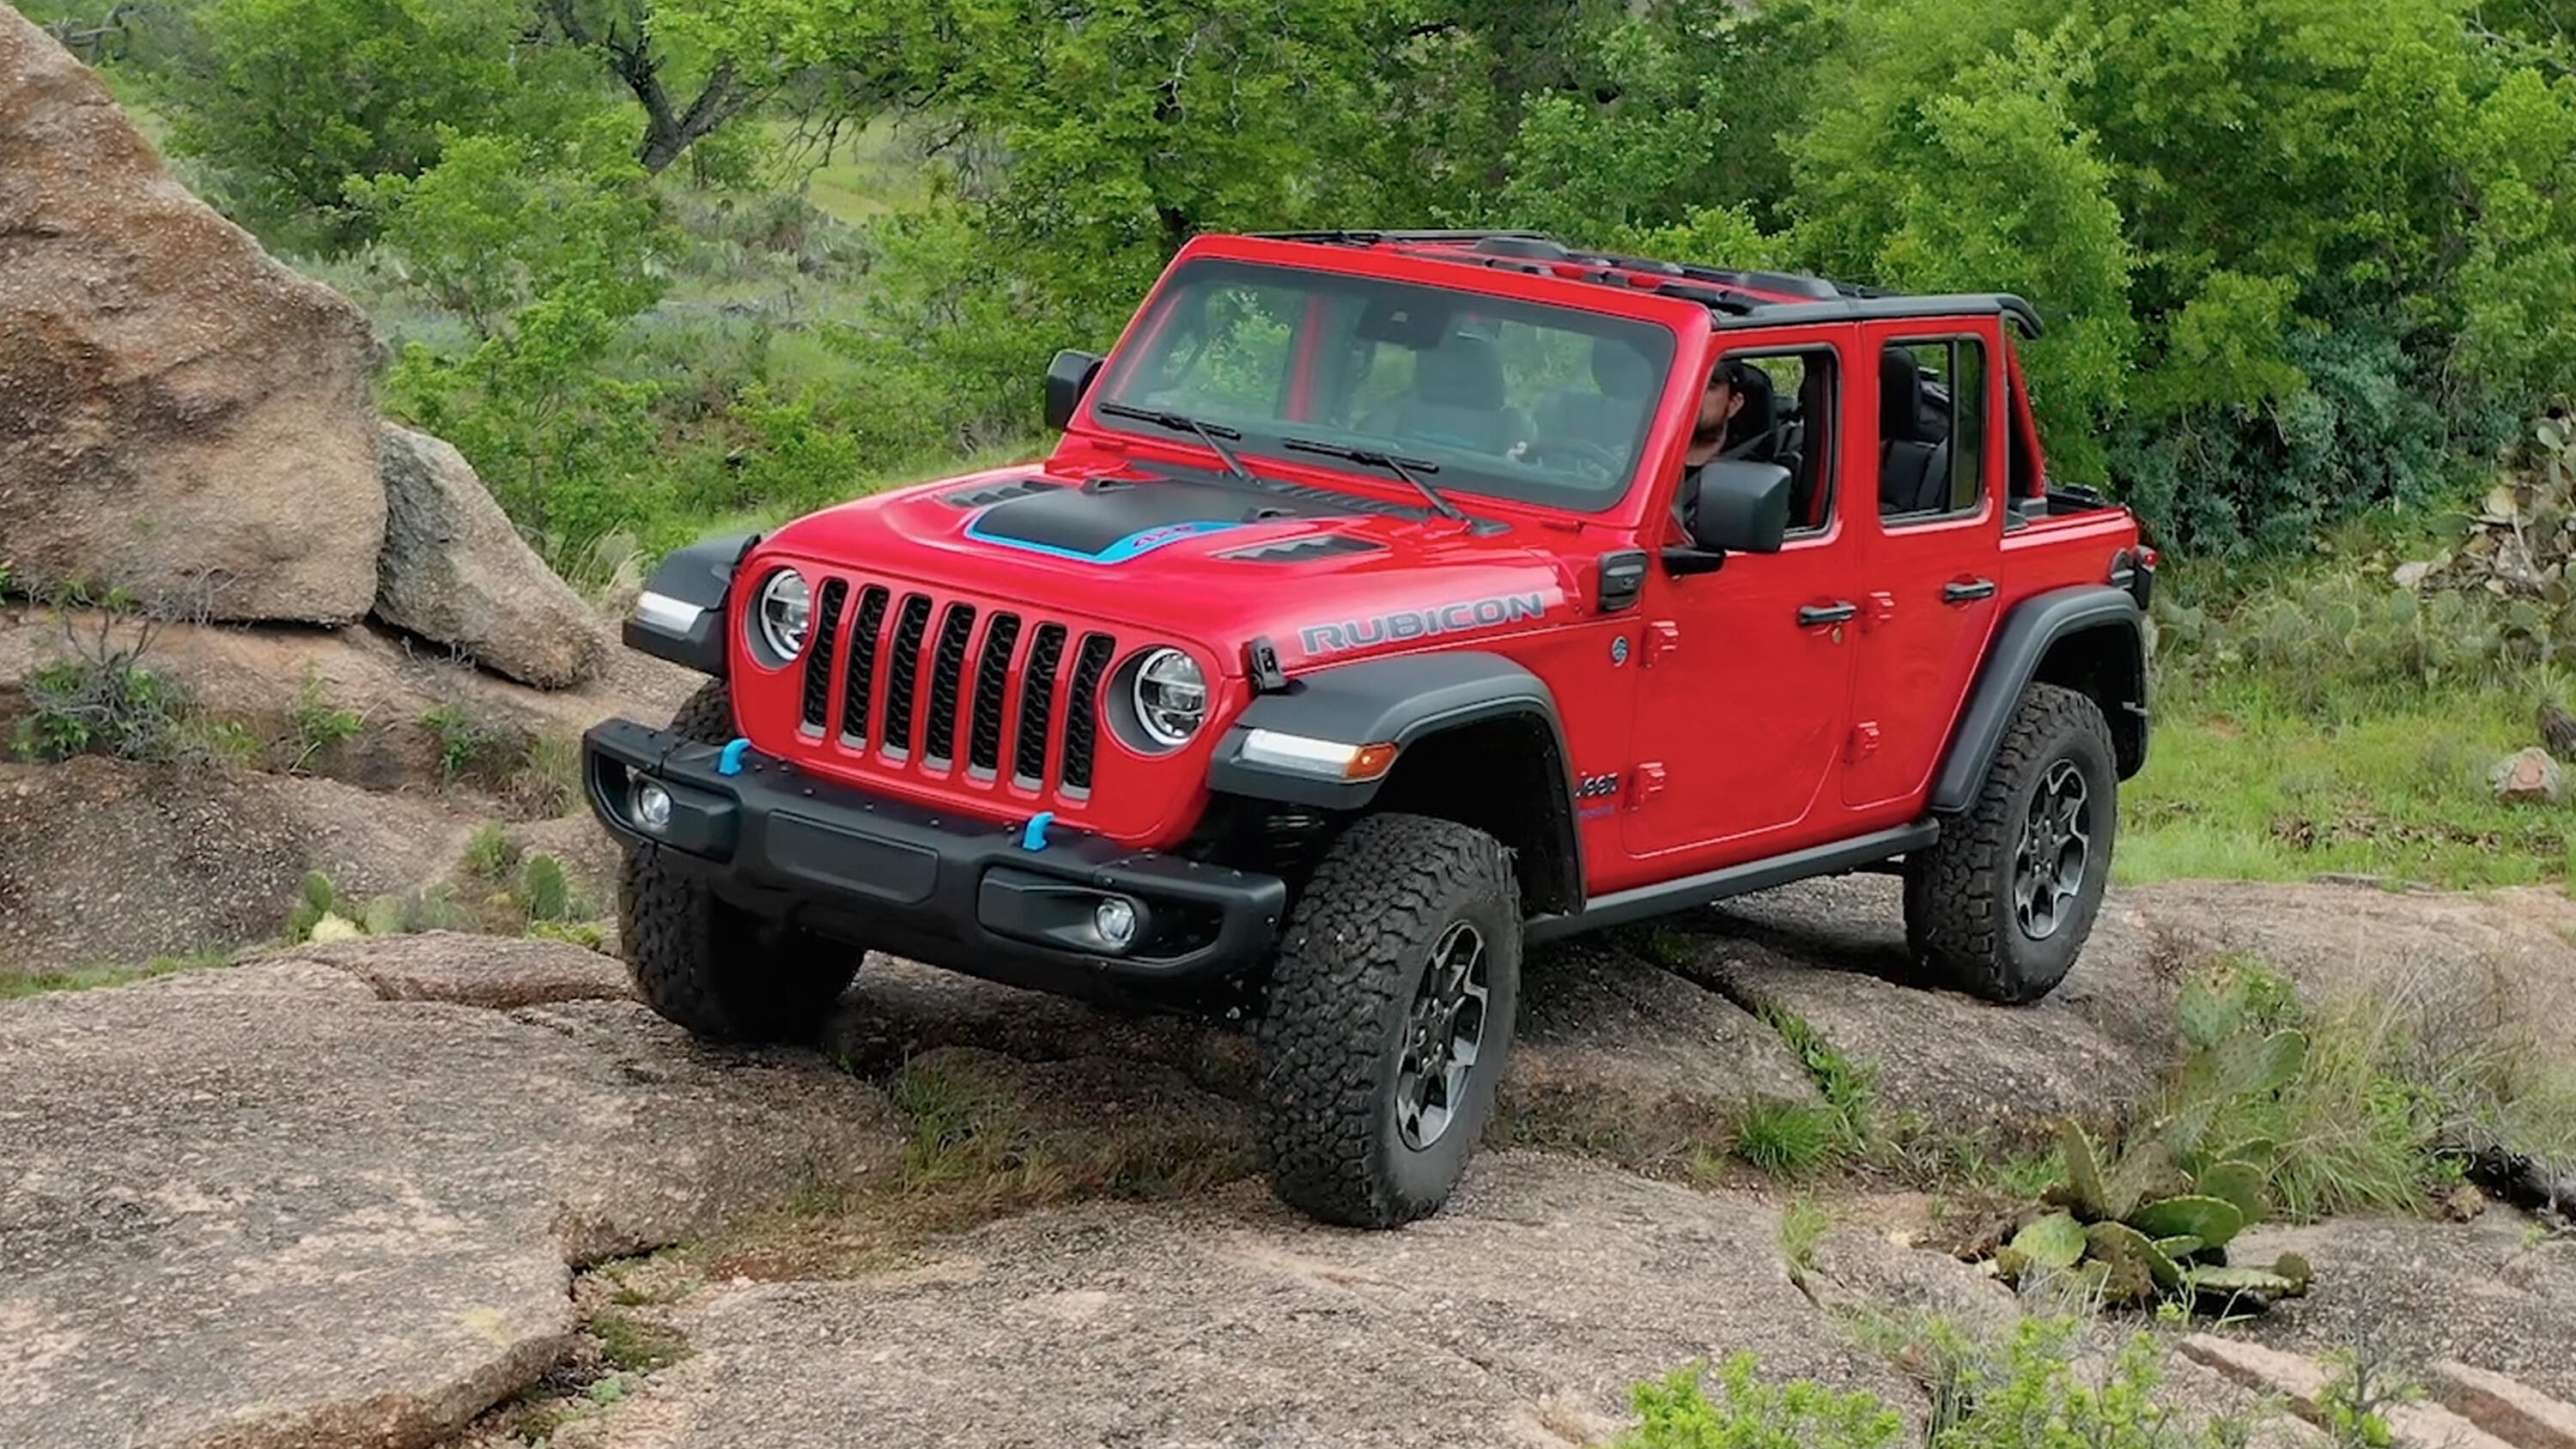 Video: 2021 Jeep Wrangler 4xe: A powerful, plug-in electric off-roader